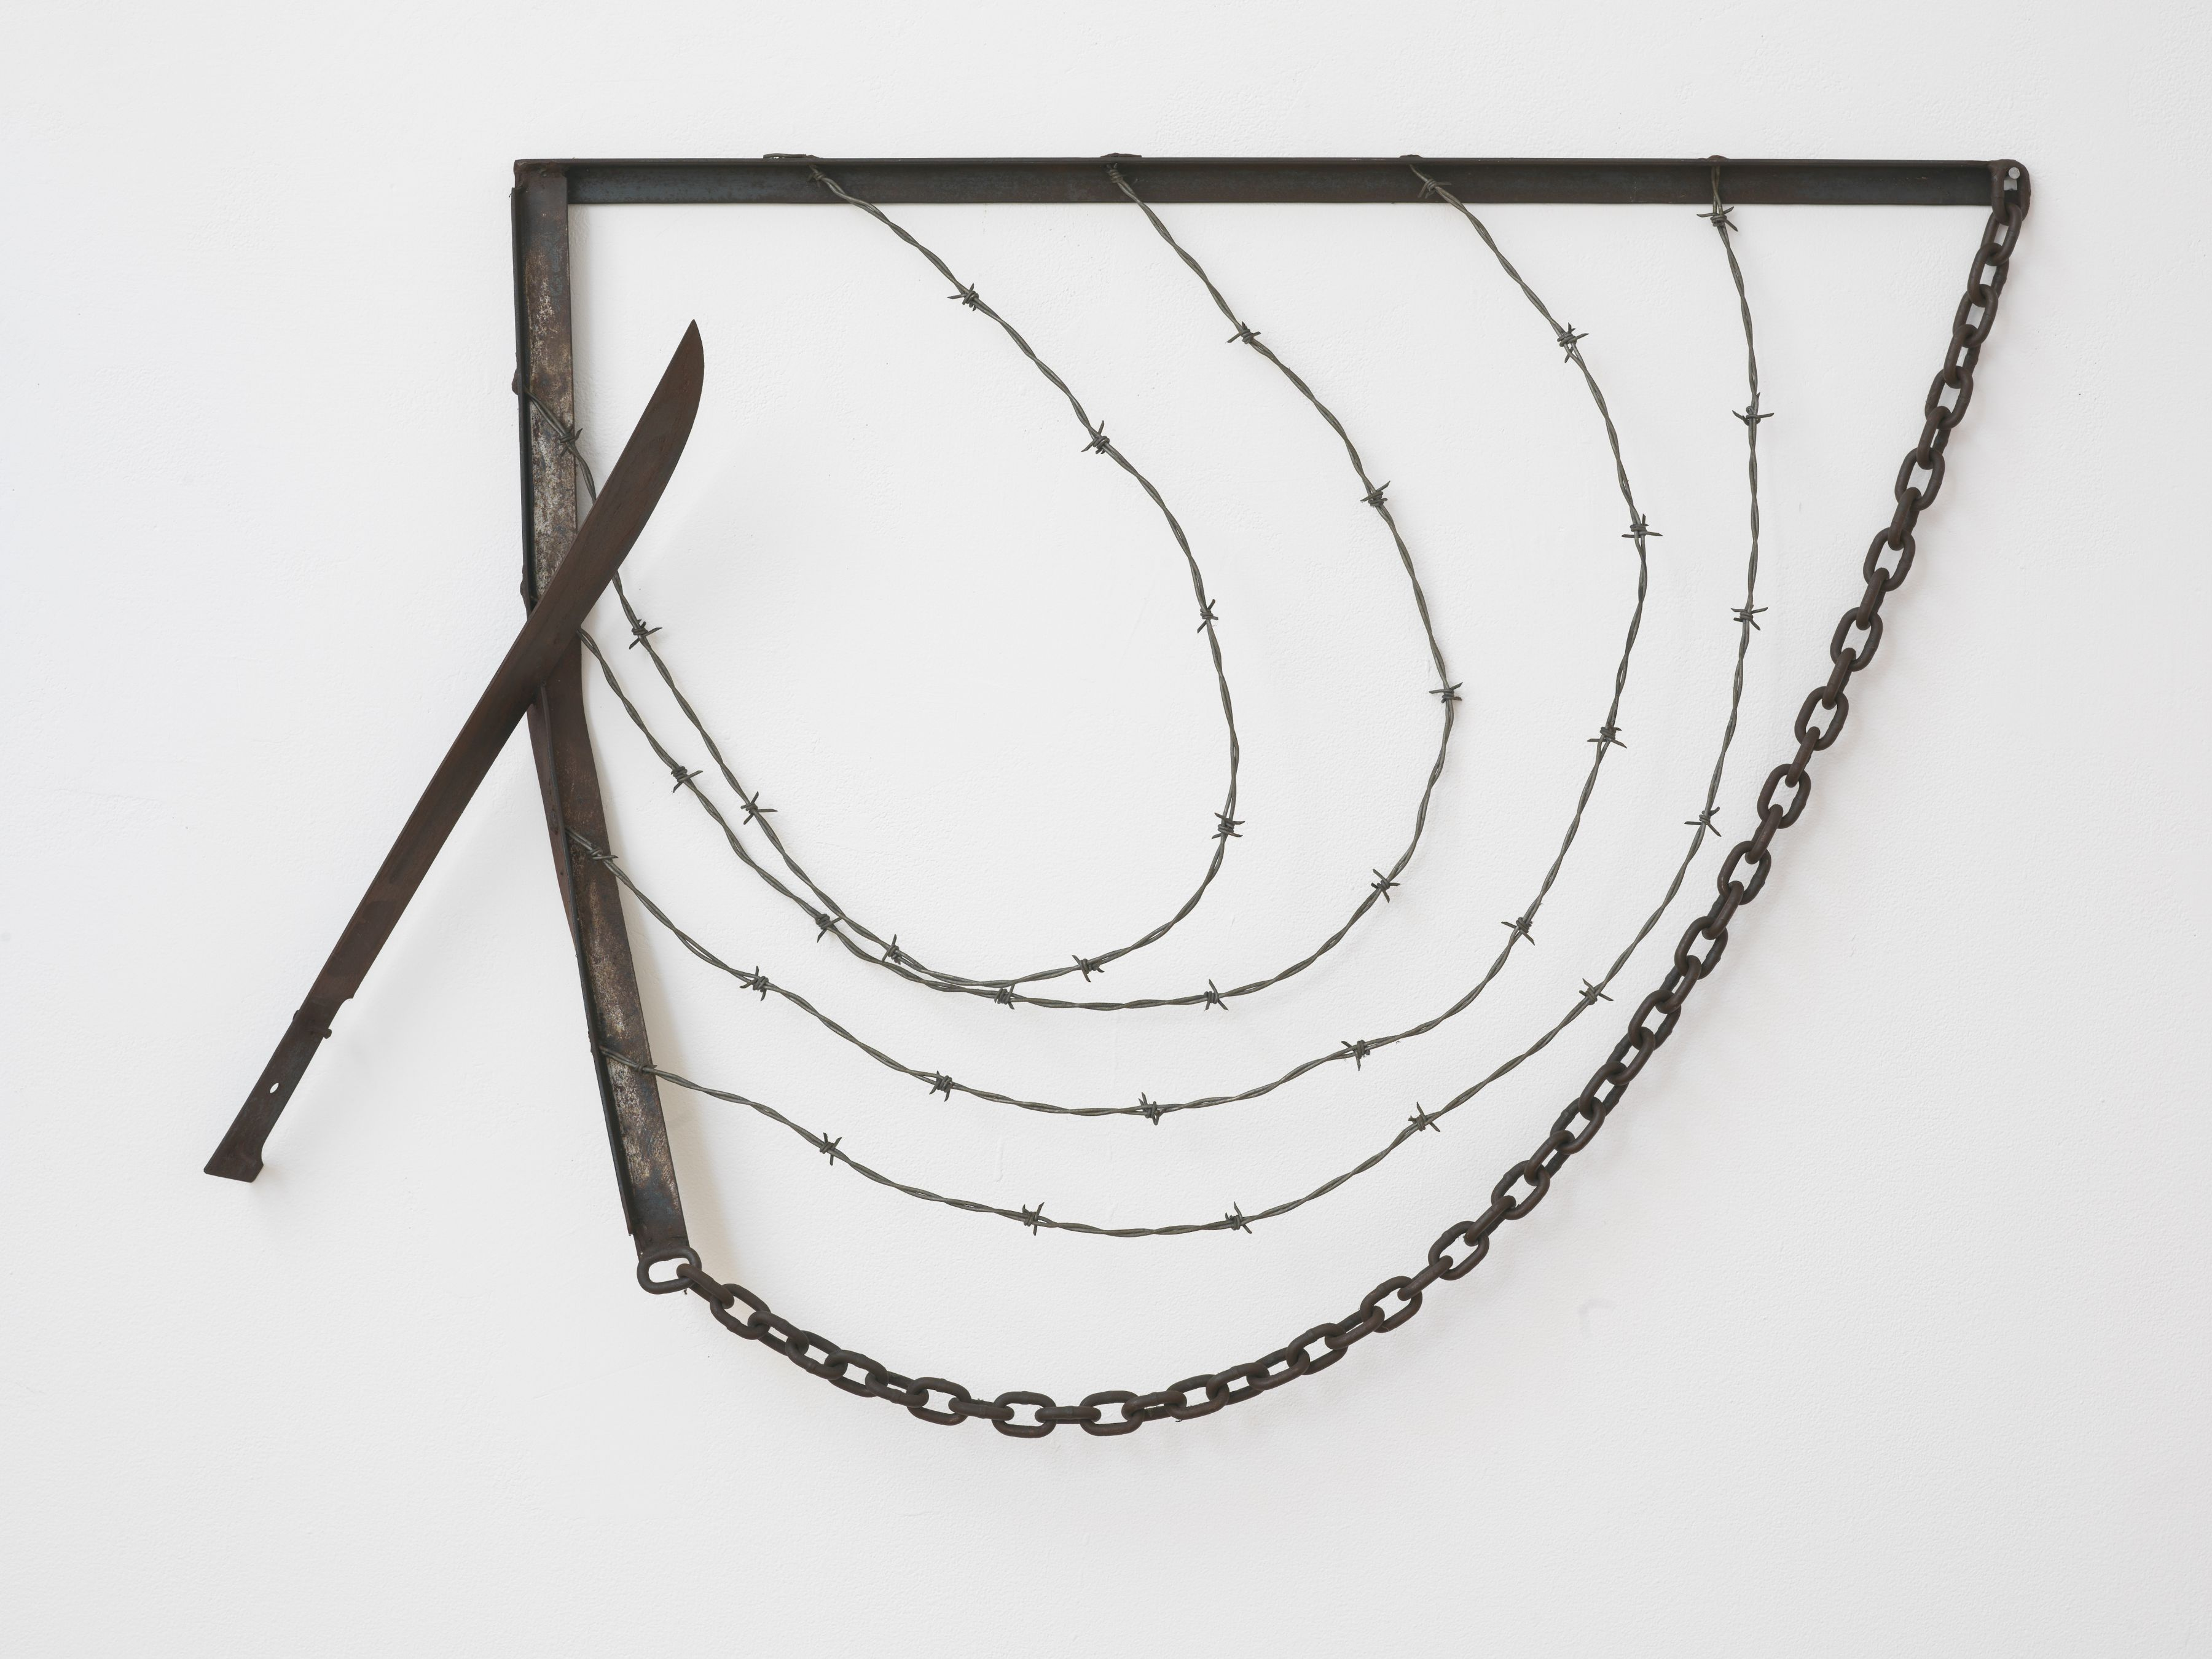 Machete for Gregory, 1974, Welded steel, barbed wire, and chain